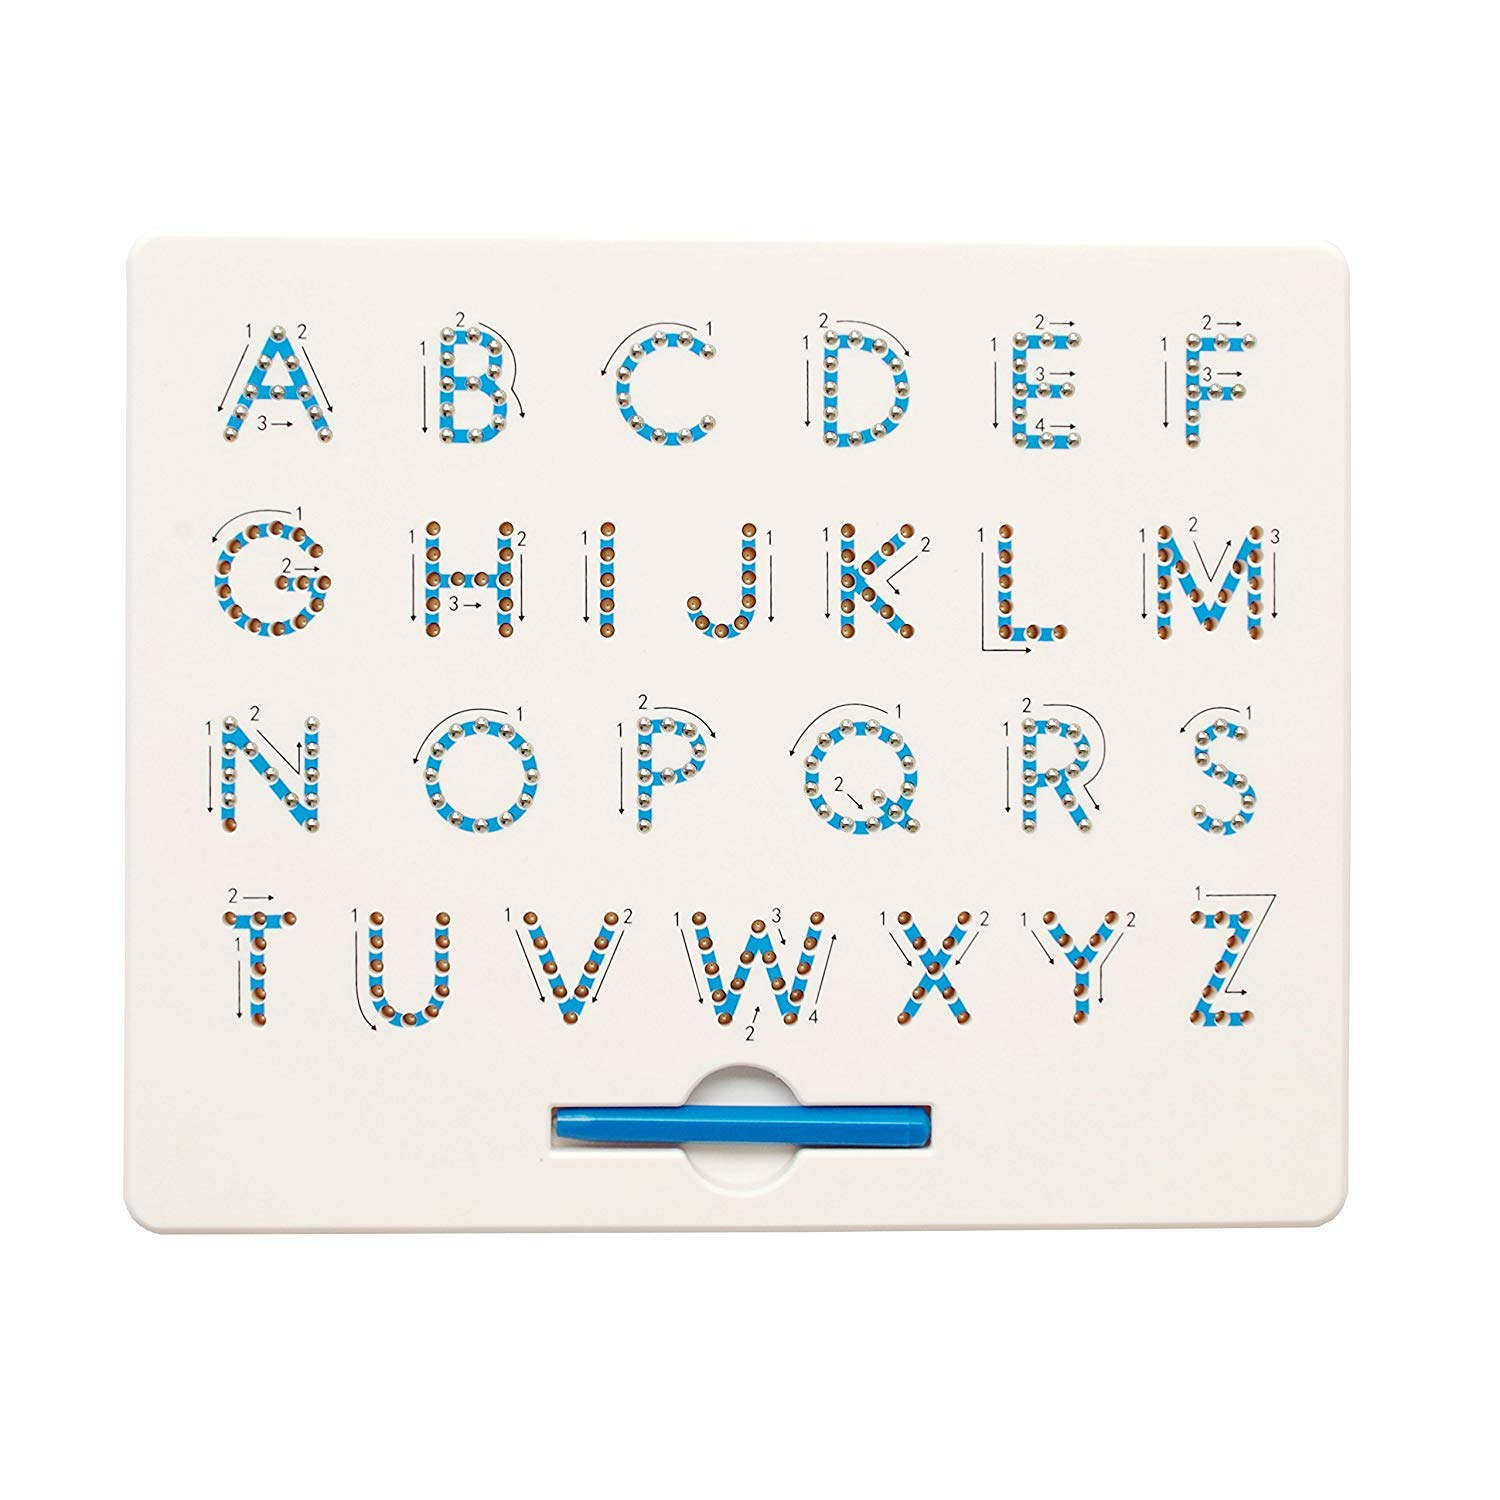 Cretee A to Z Capital Letters Magnet Board for Kids Educational Toy Magnetic Balls Tablet by Cretee